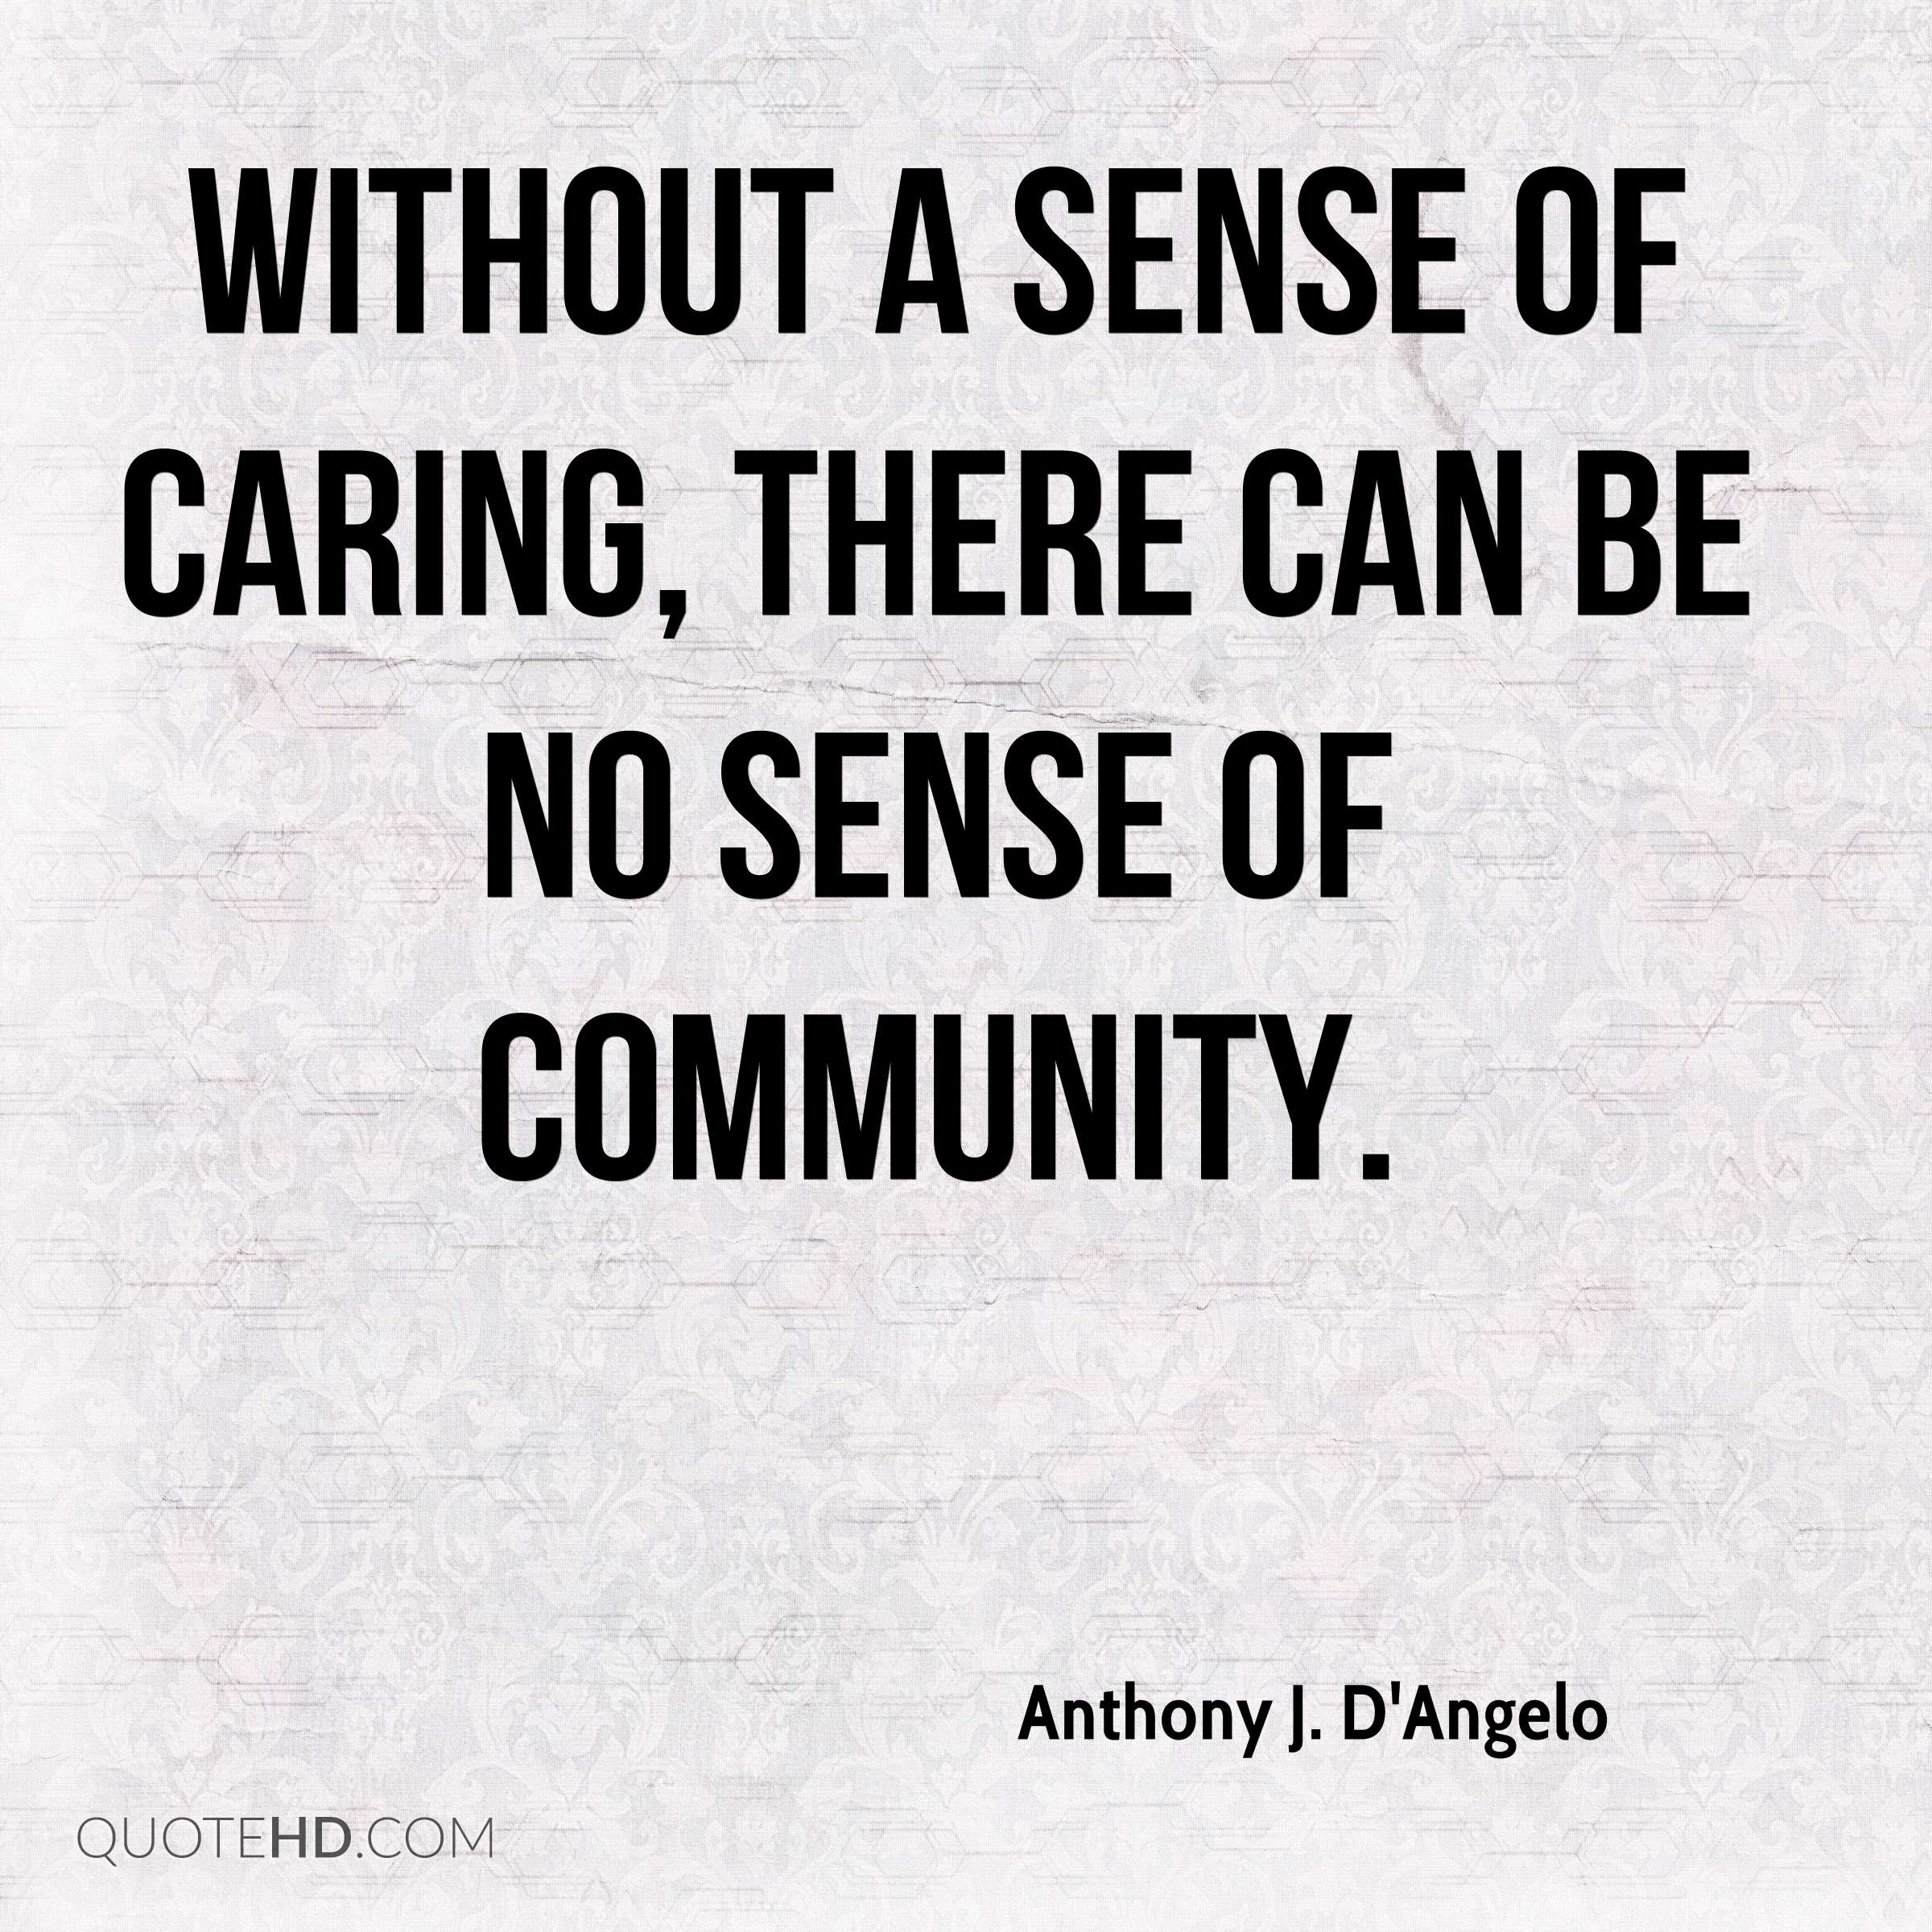 Quotes About Caring Www.quotehdimagequotesauthors78Anthonyjda.